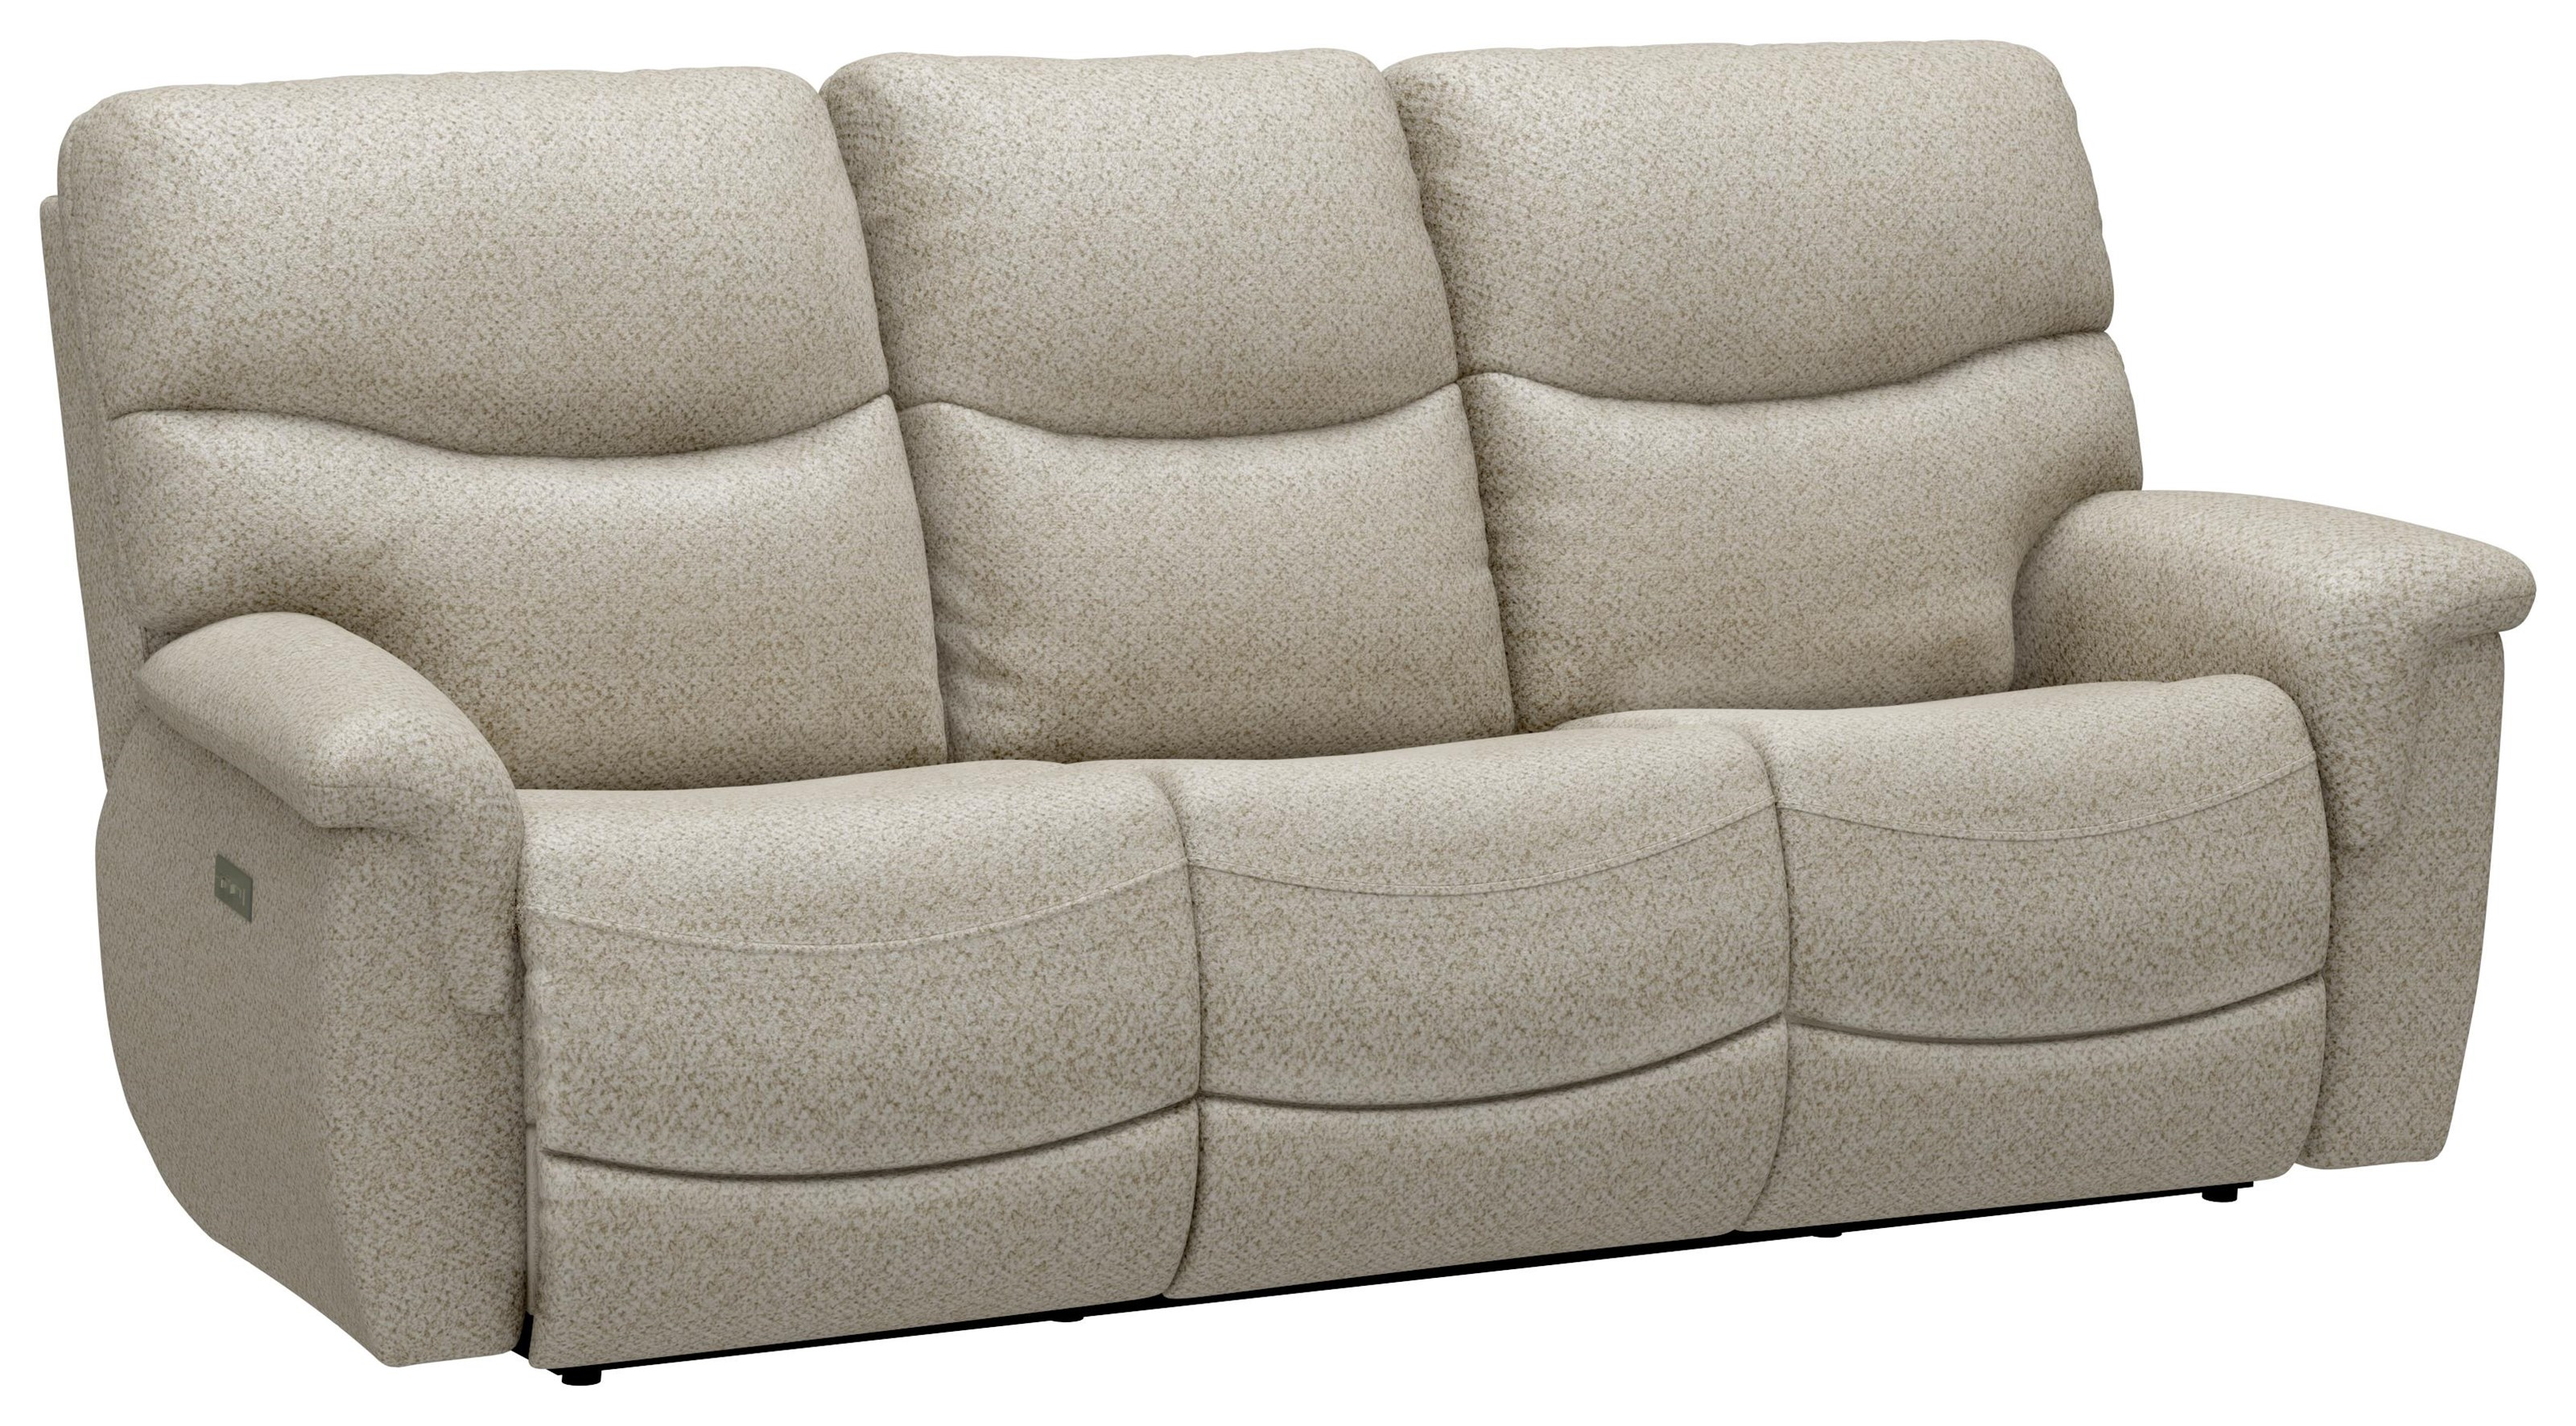 Alex Triple Power Reclining Sofa by Sunset Home at Walker's Furniture